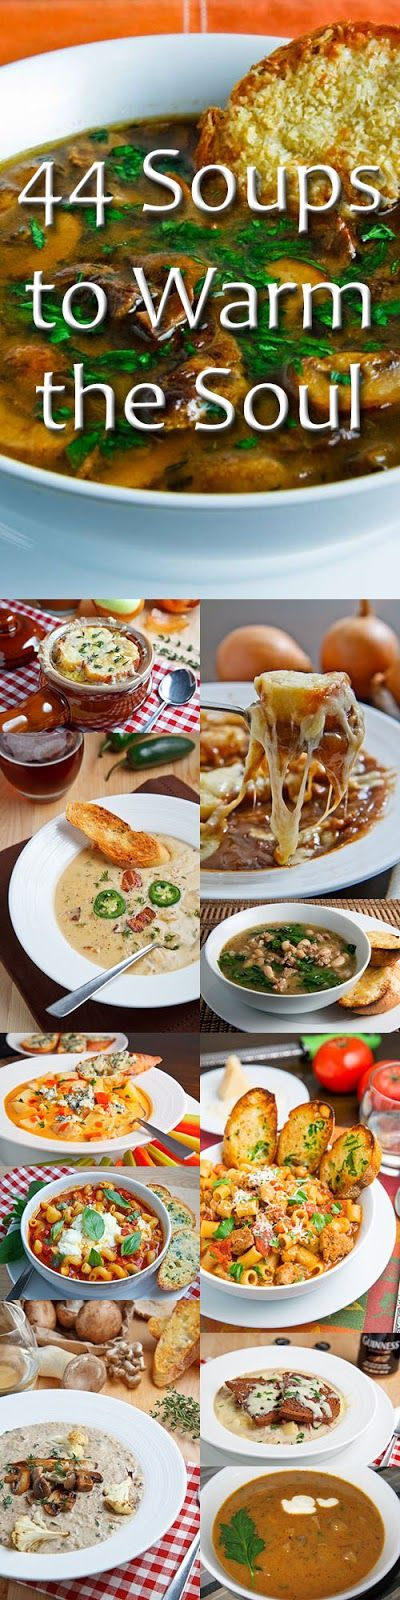 44 Soups to Warm the Soul